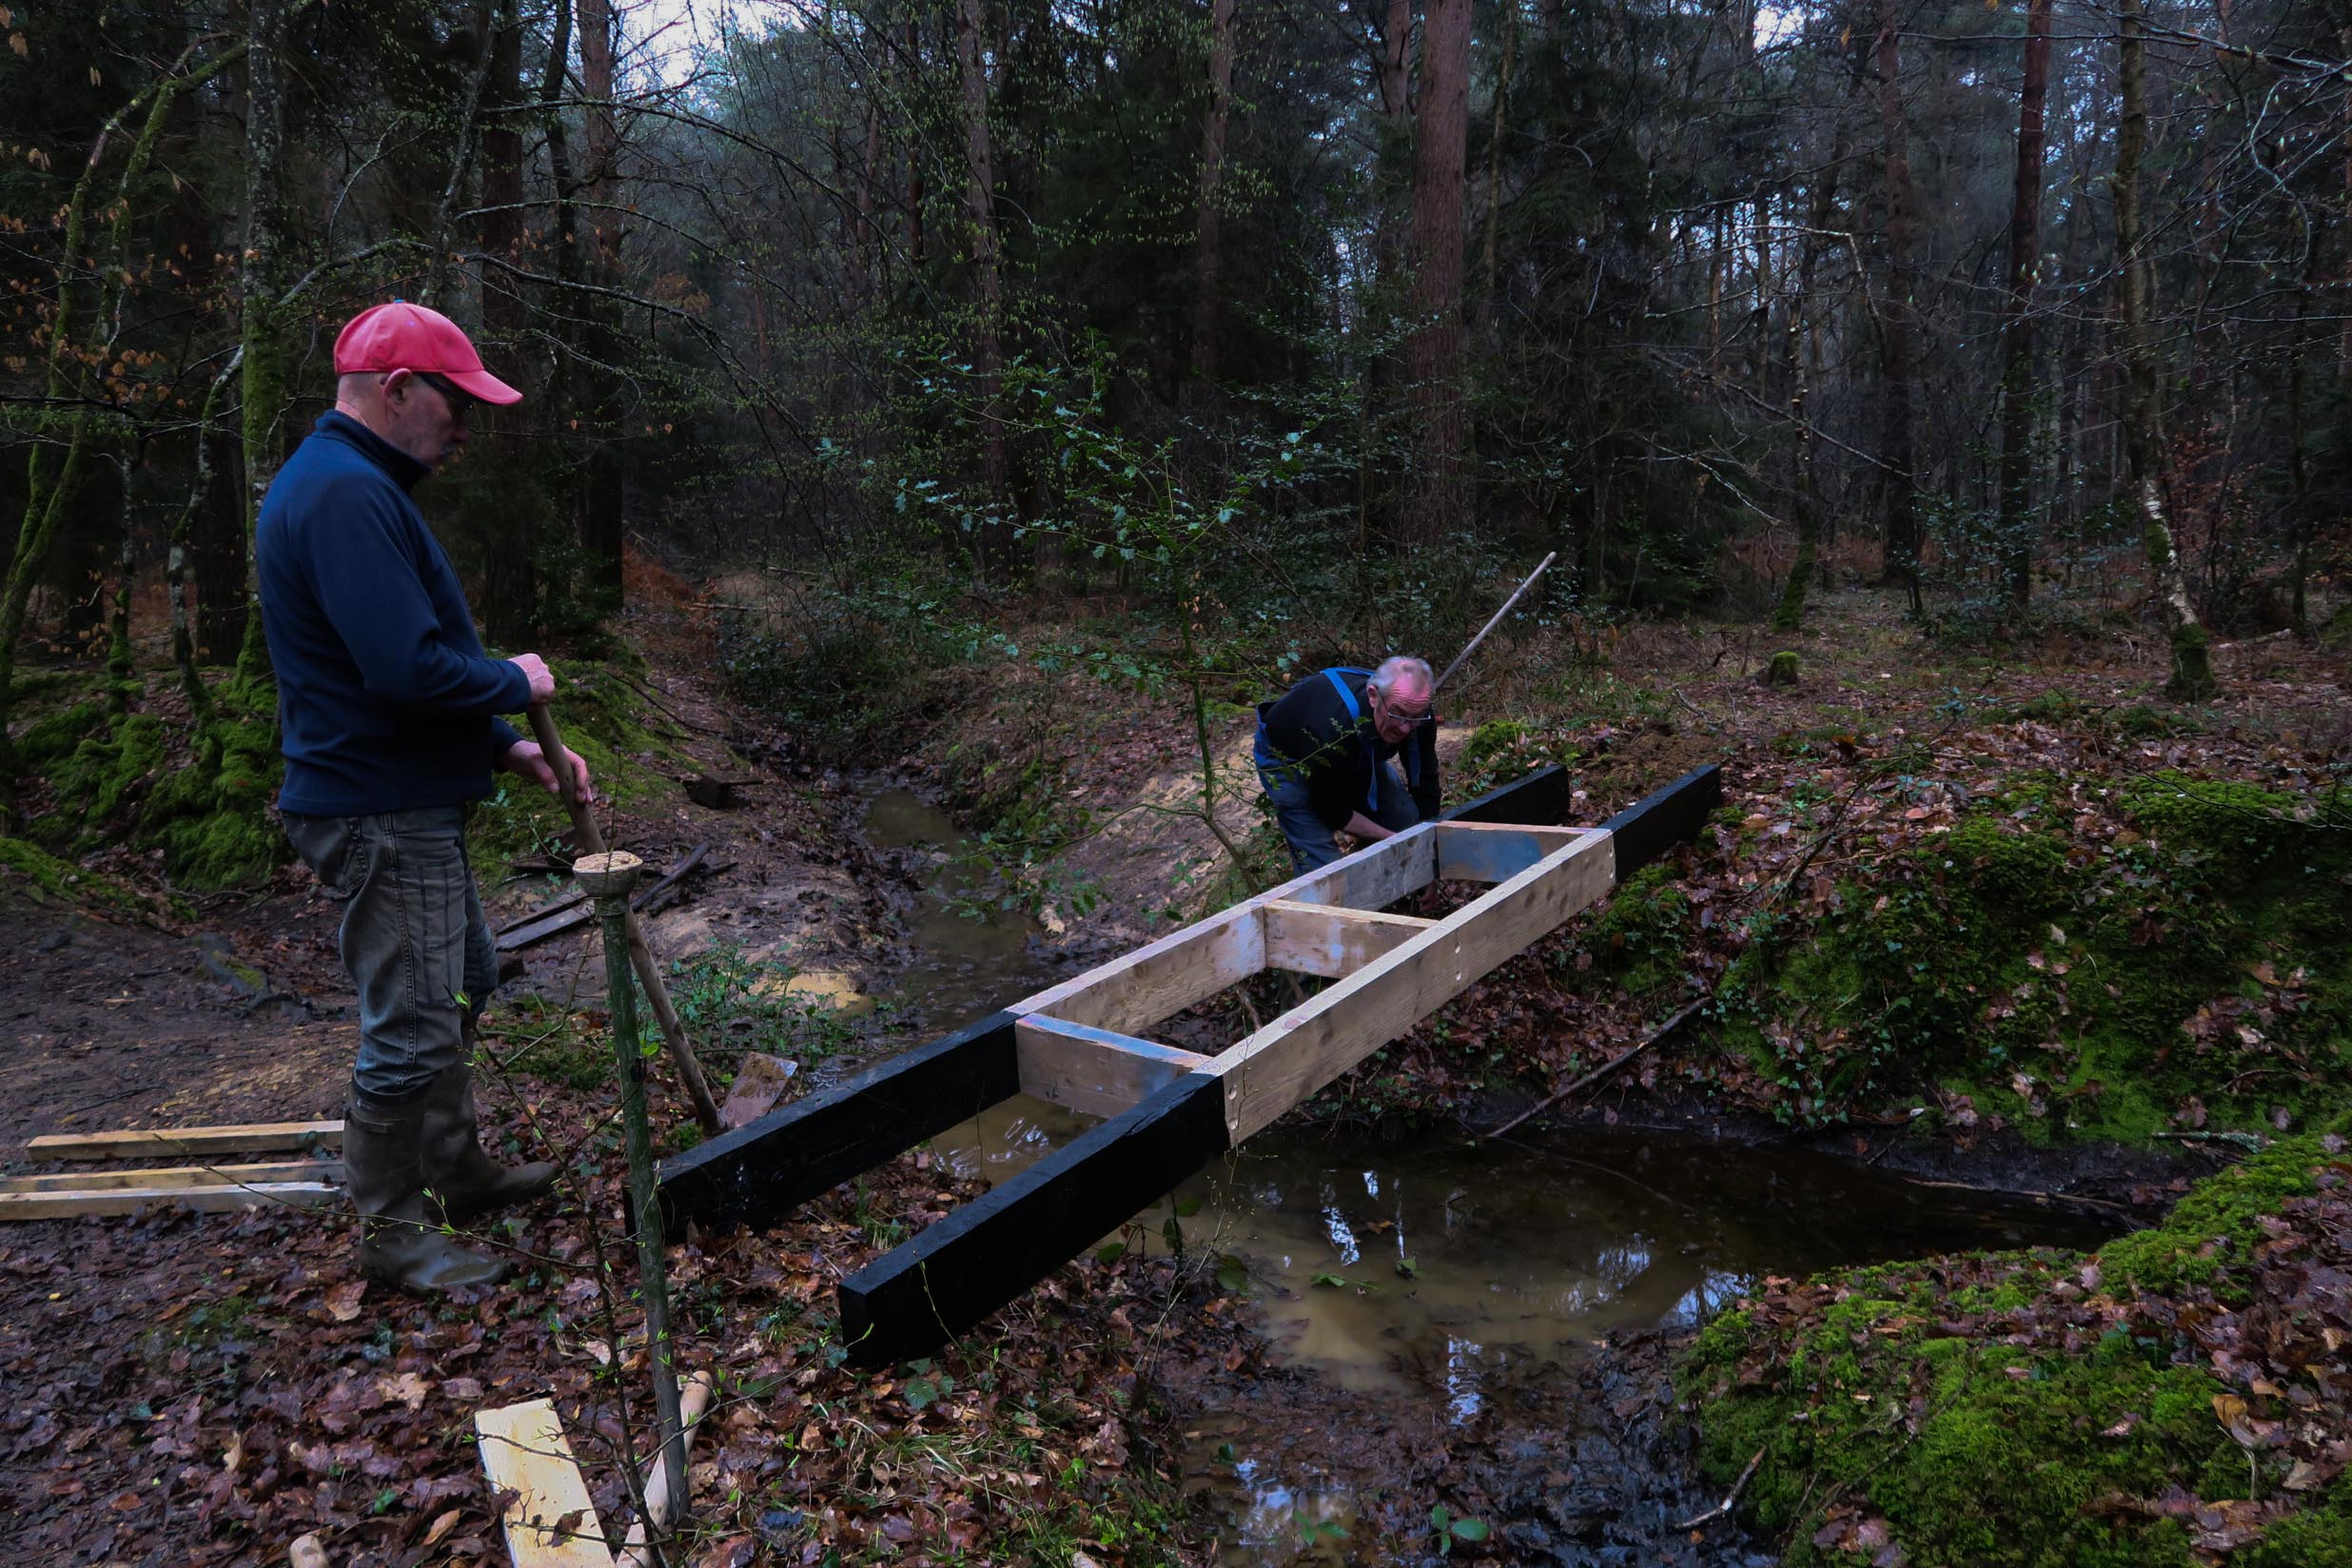 2018-03-10 Fabrication passerelle forêt Rennes 26-3